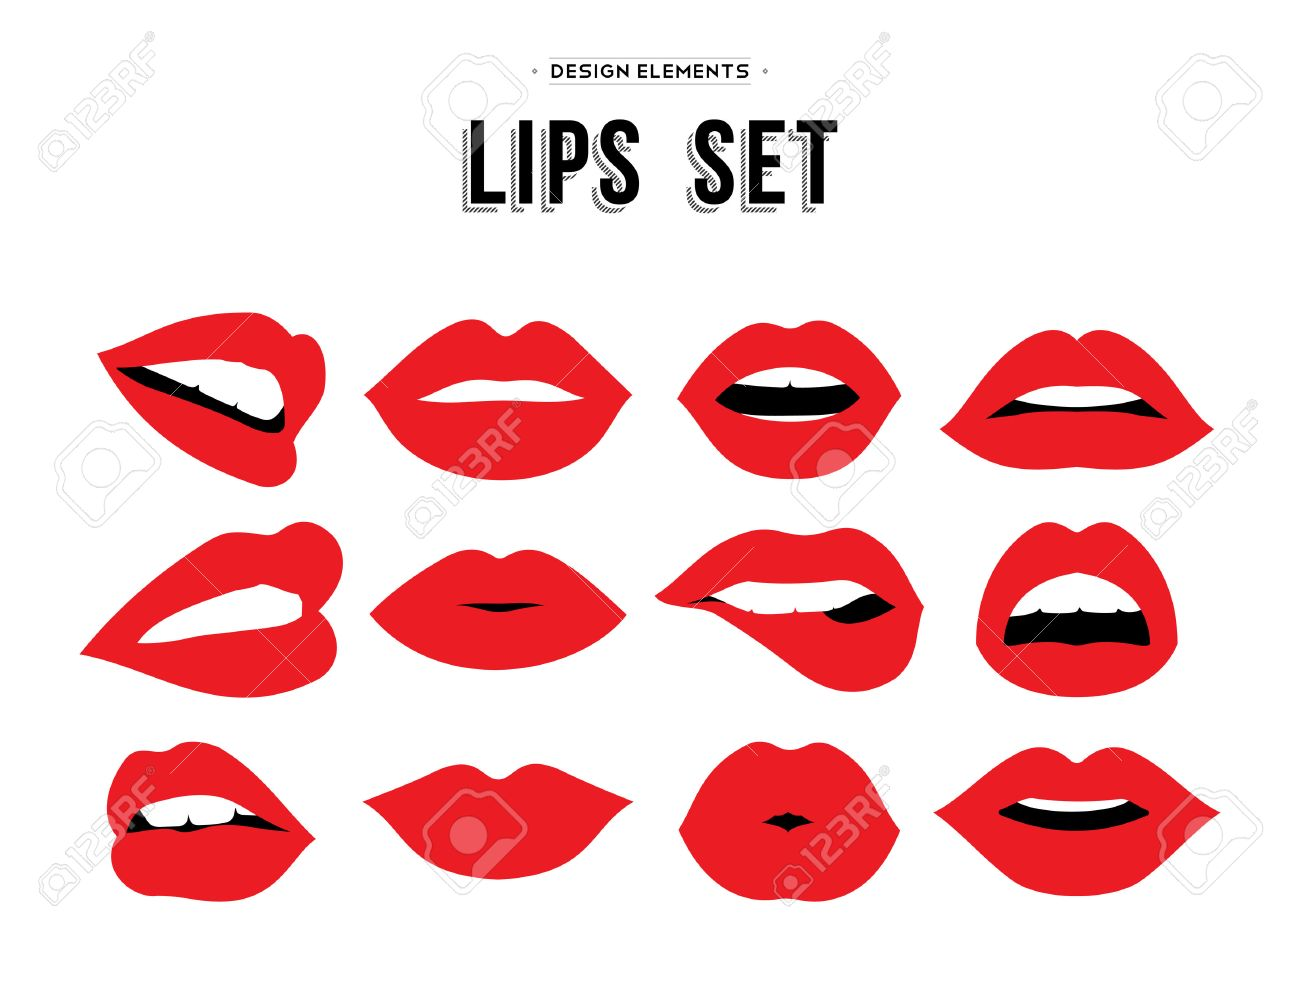 Woman's lip gestures set. Girl mouths close up with red lipstick makeup expressing different emotions. vector. - 51425560